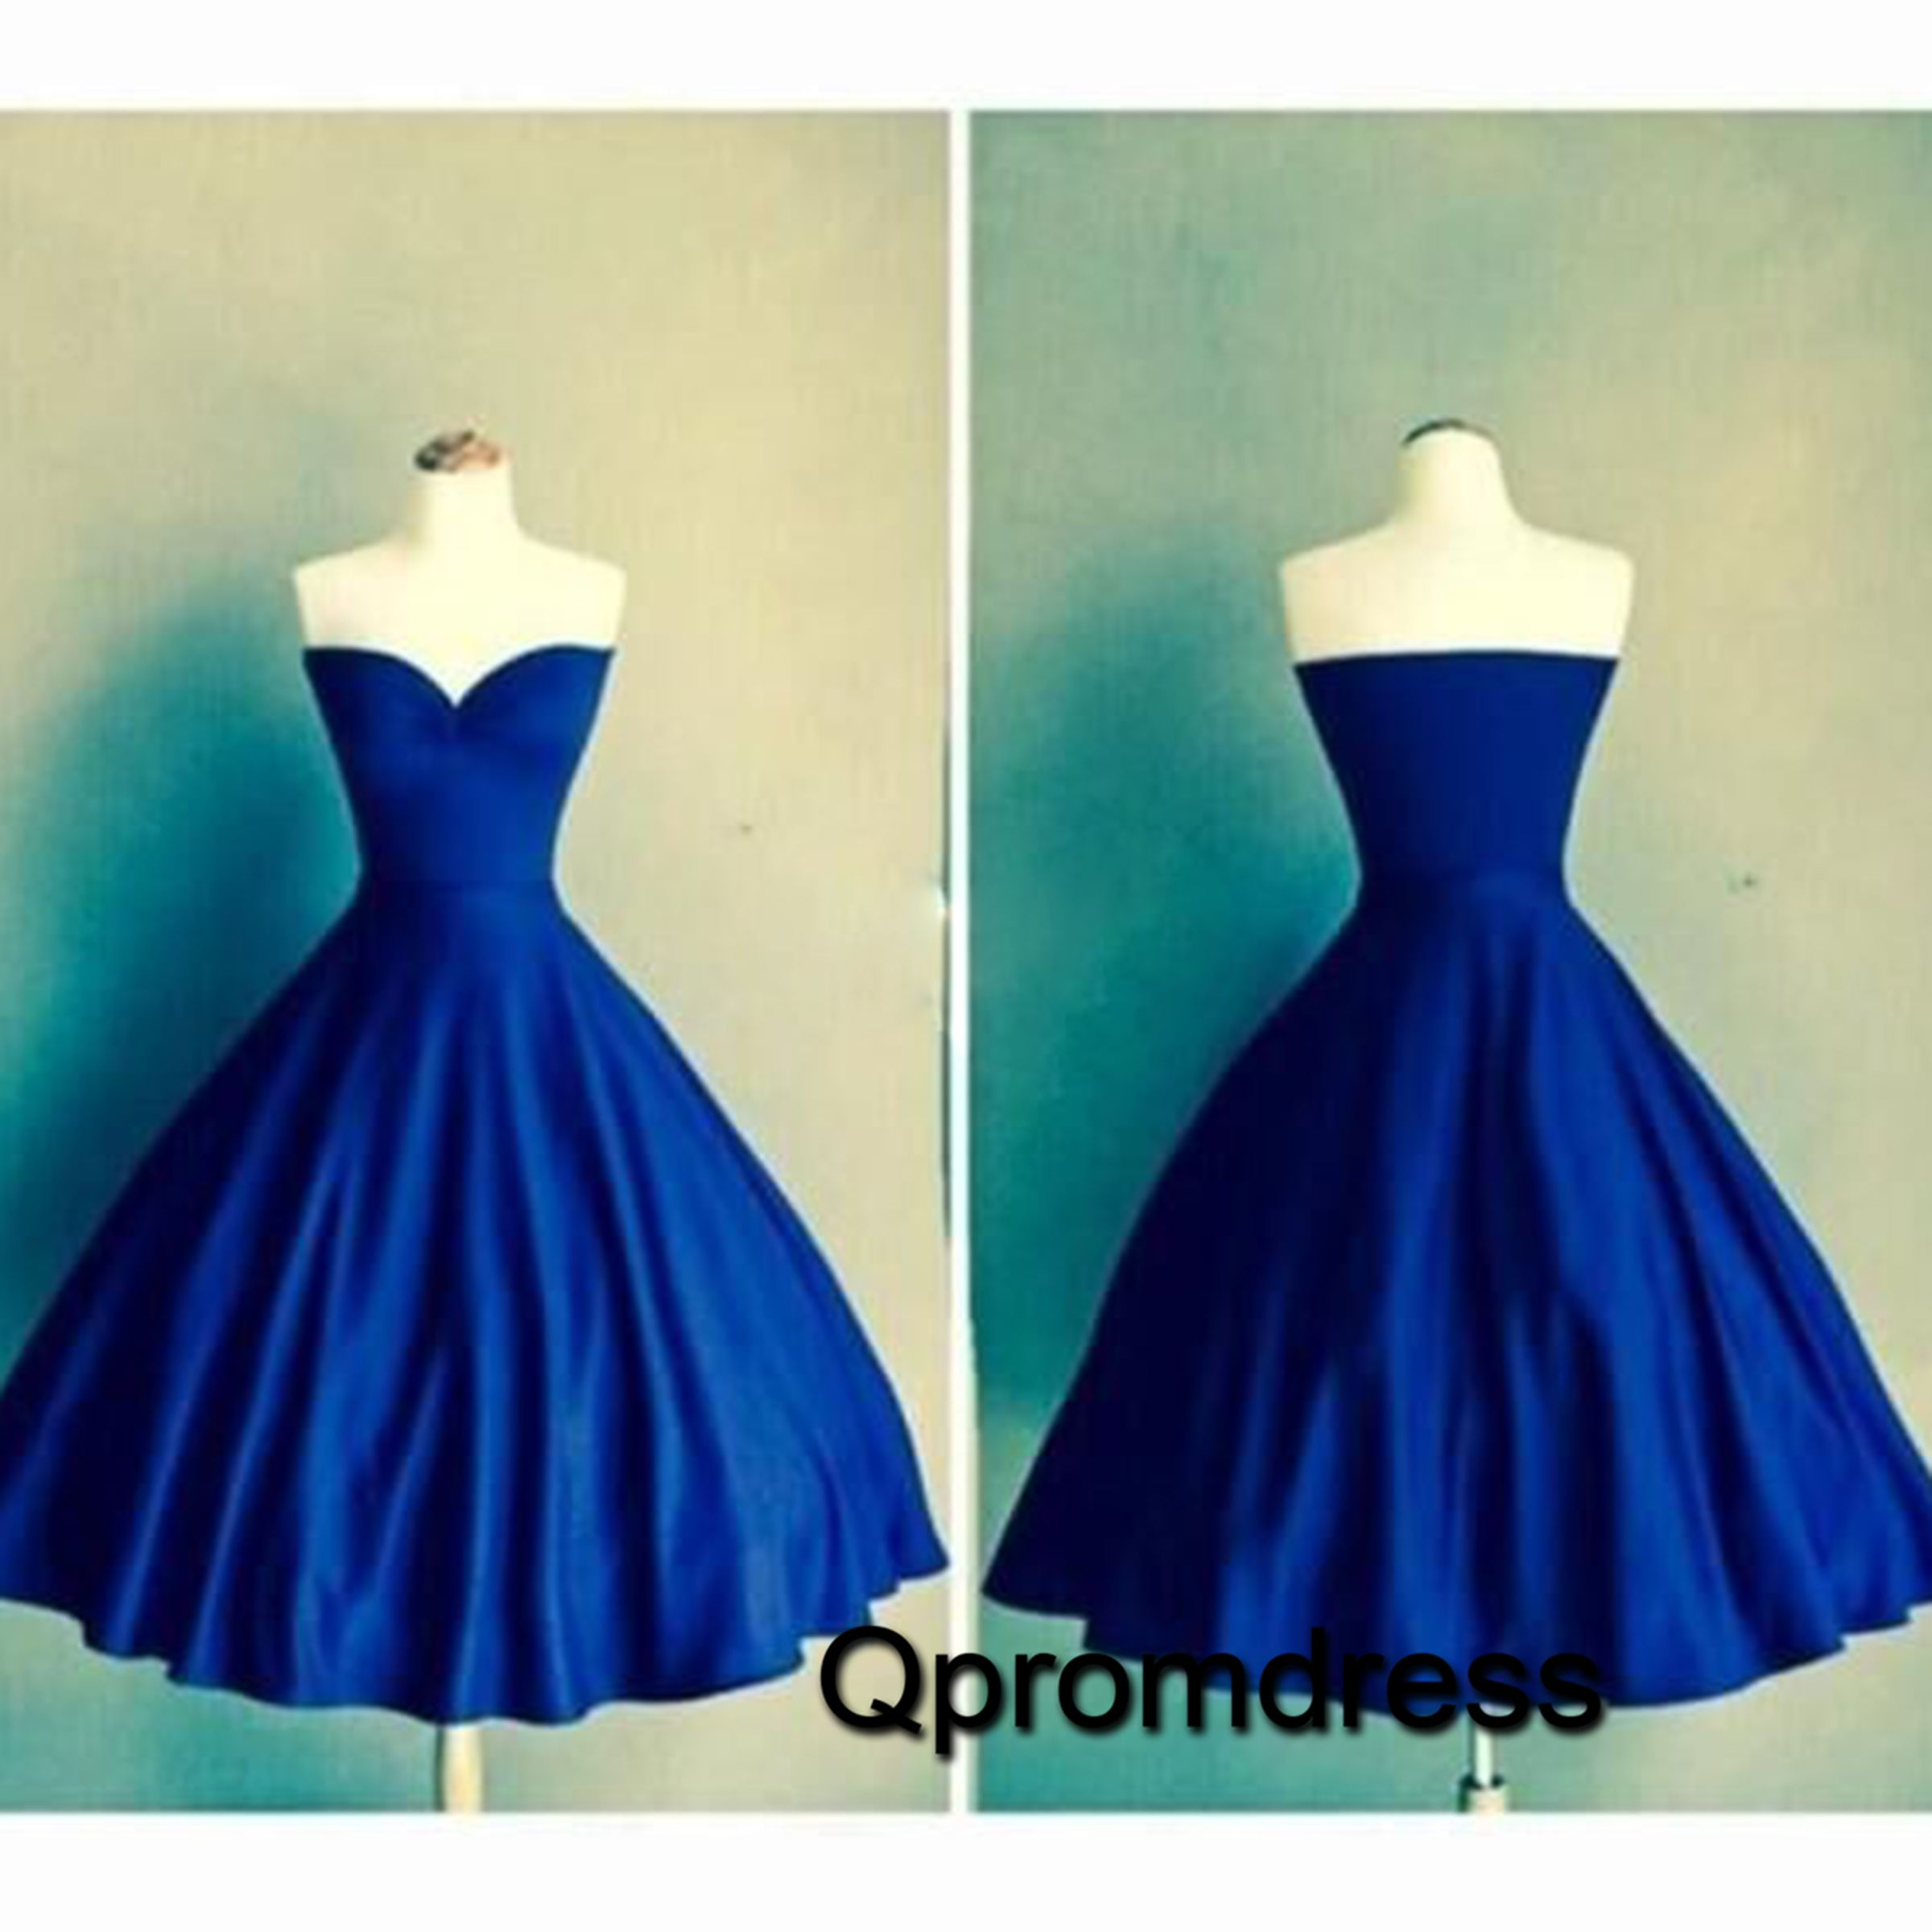 Cute navy blue satin sweetheart dress for prom 2016, bridal dress ...